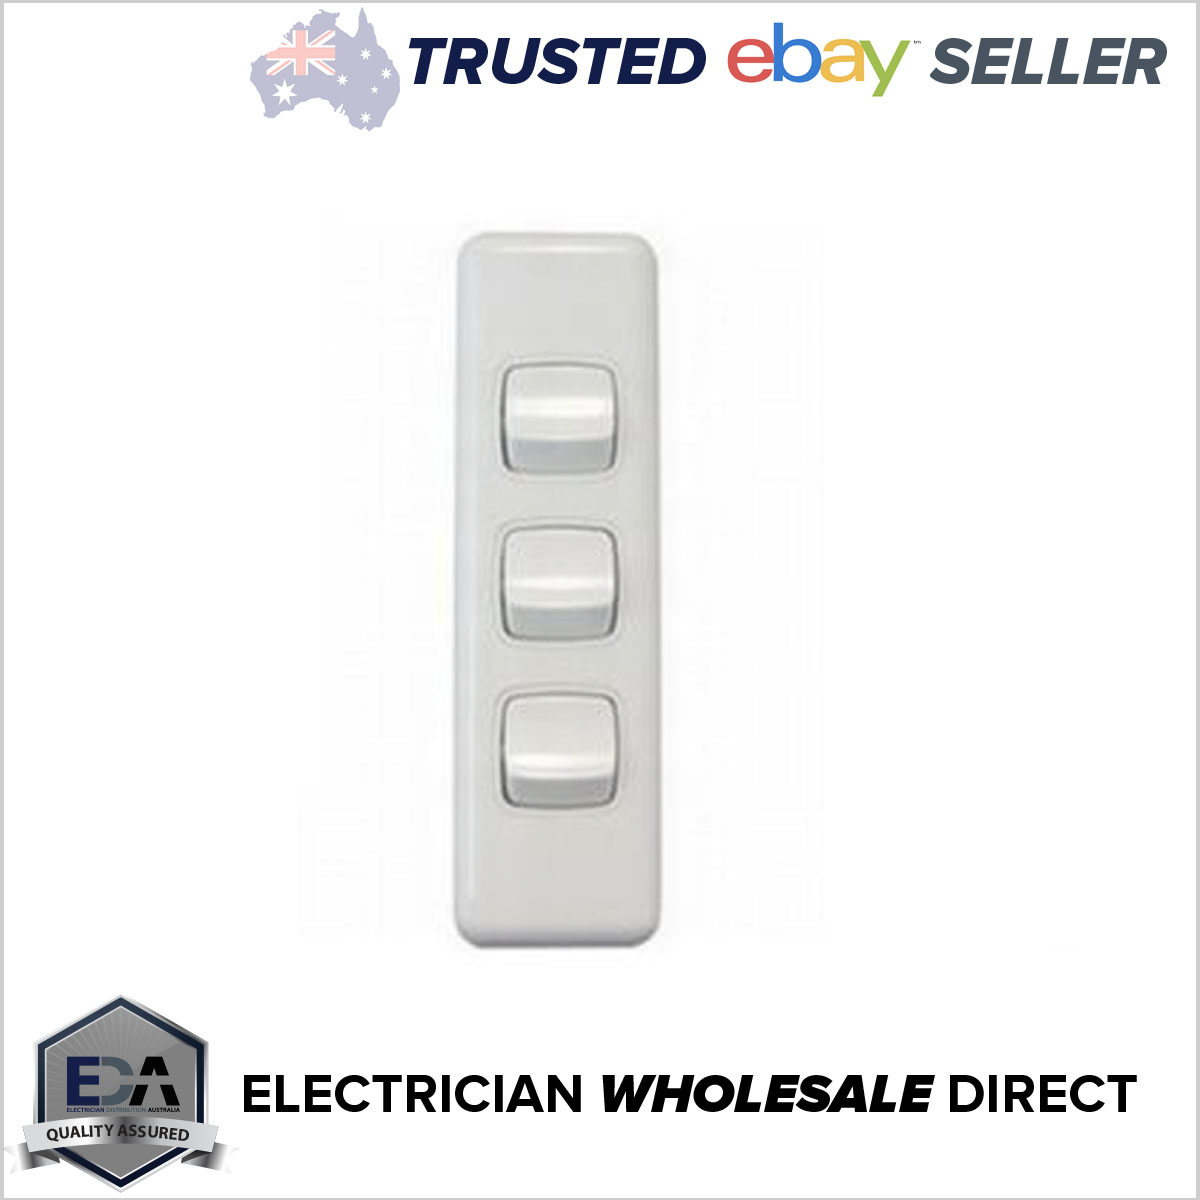 3 Gang Architrave Light Switch Triple White Electrical - Eda Online